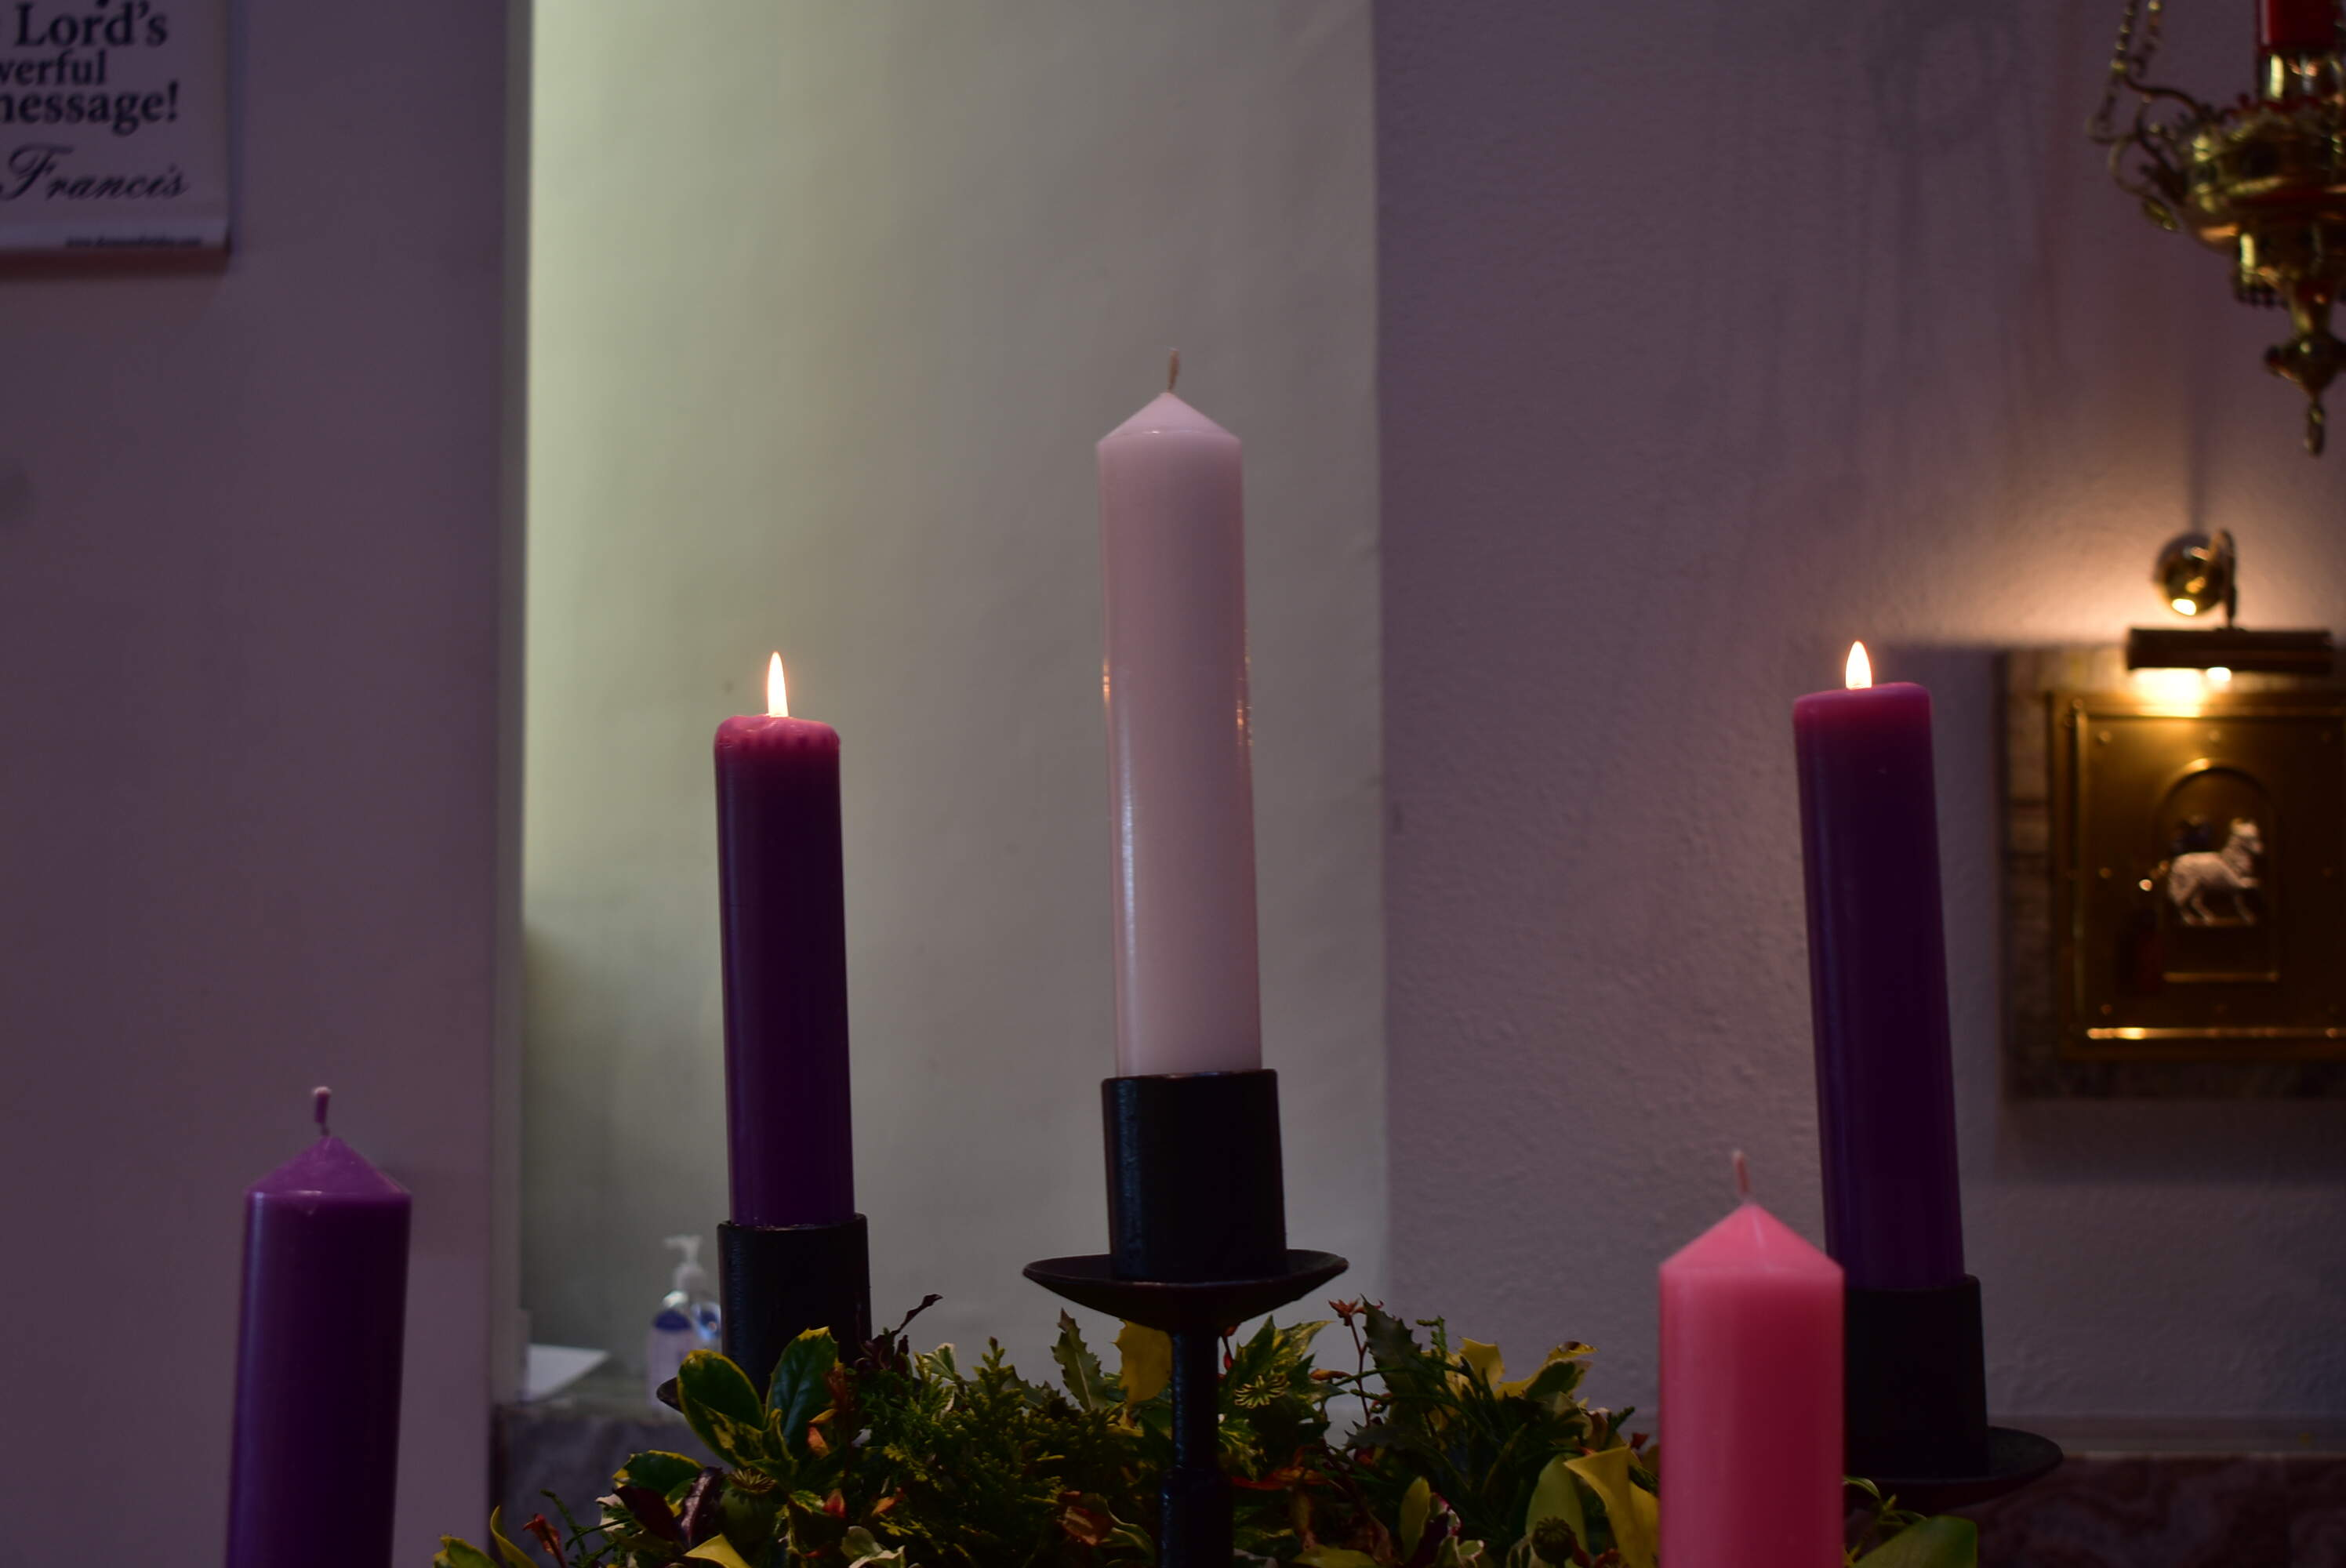 2nd Sunday of Advent 2020